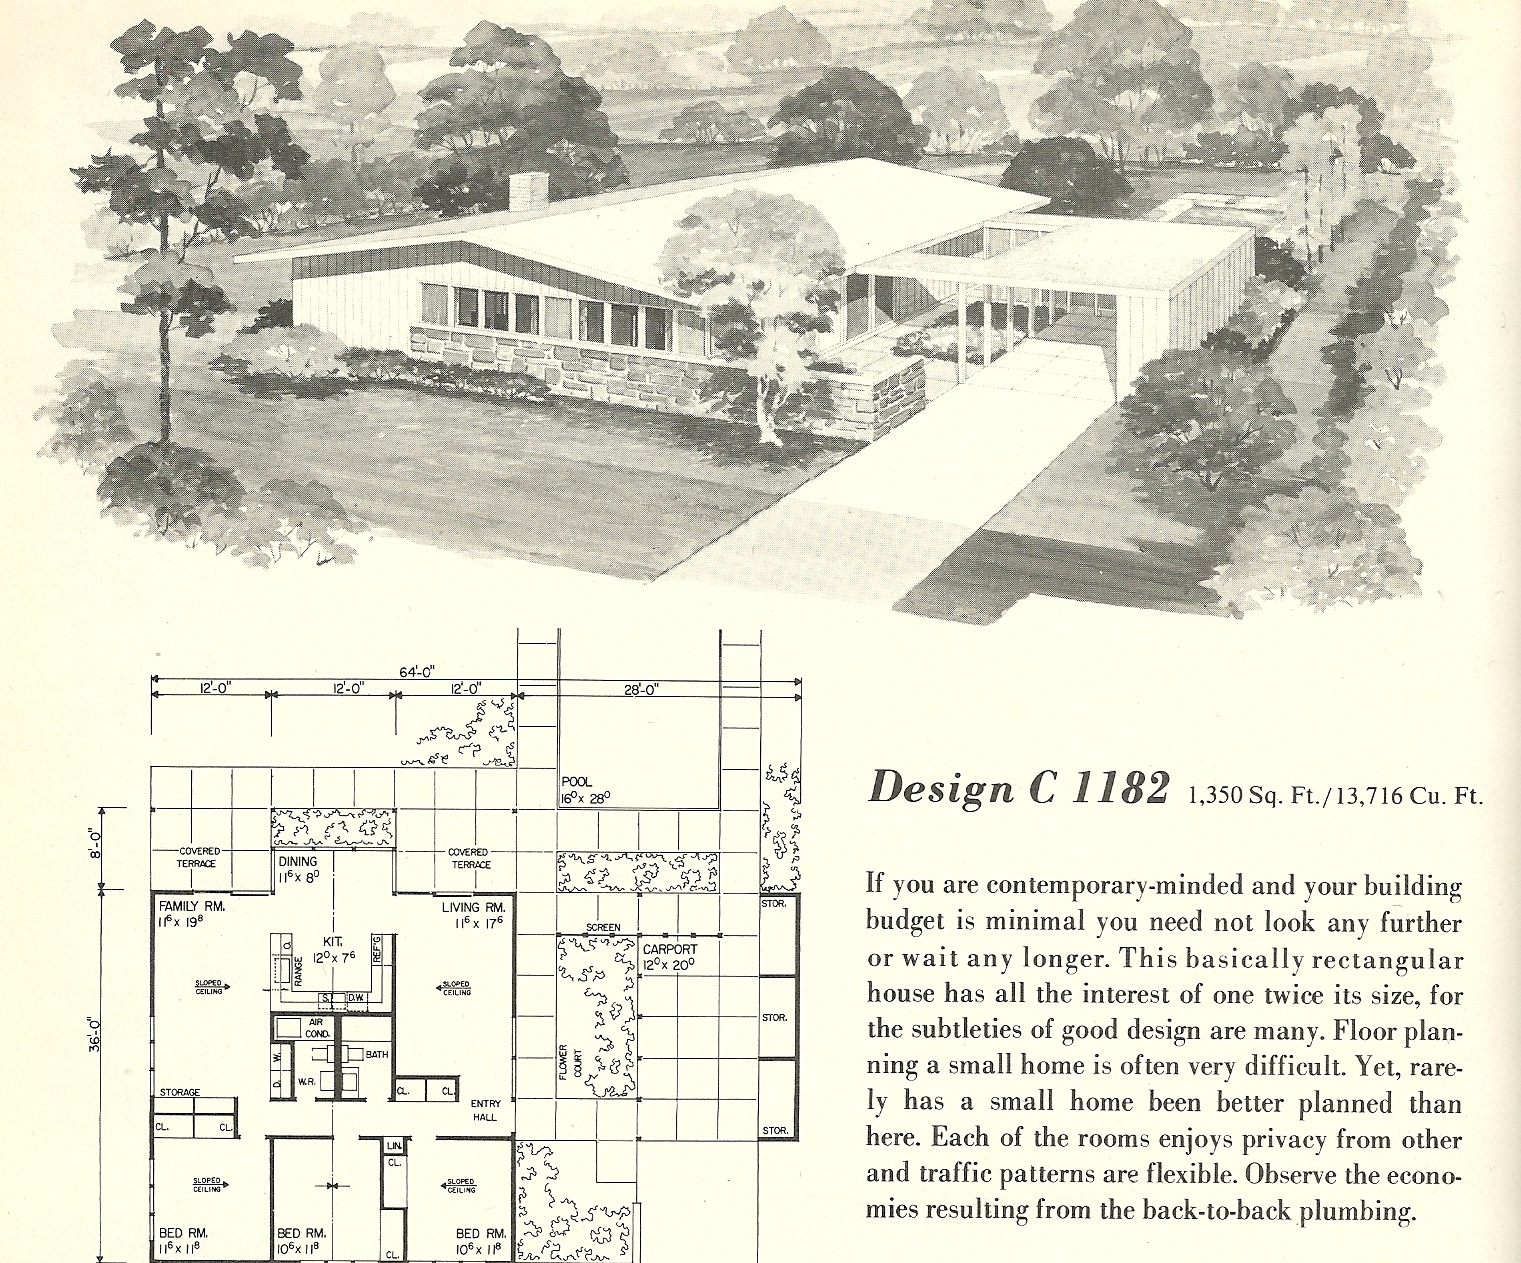 Vintage 1960s house plans hot girls wallpaper for Retro modern house plans